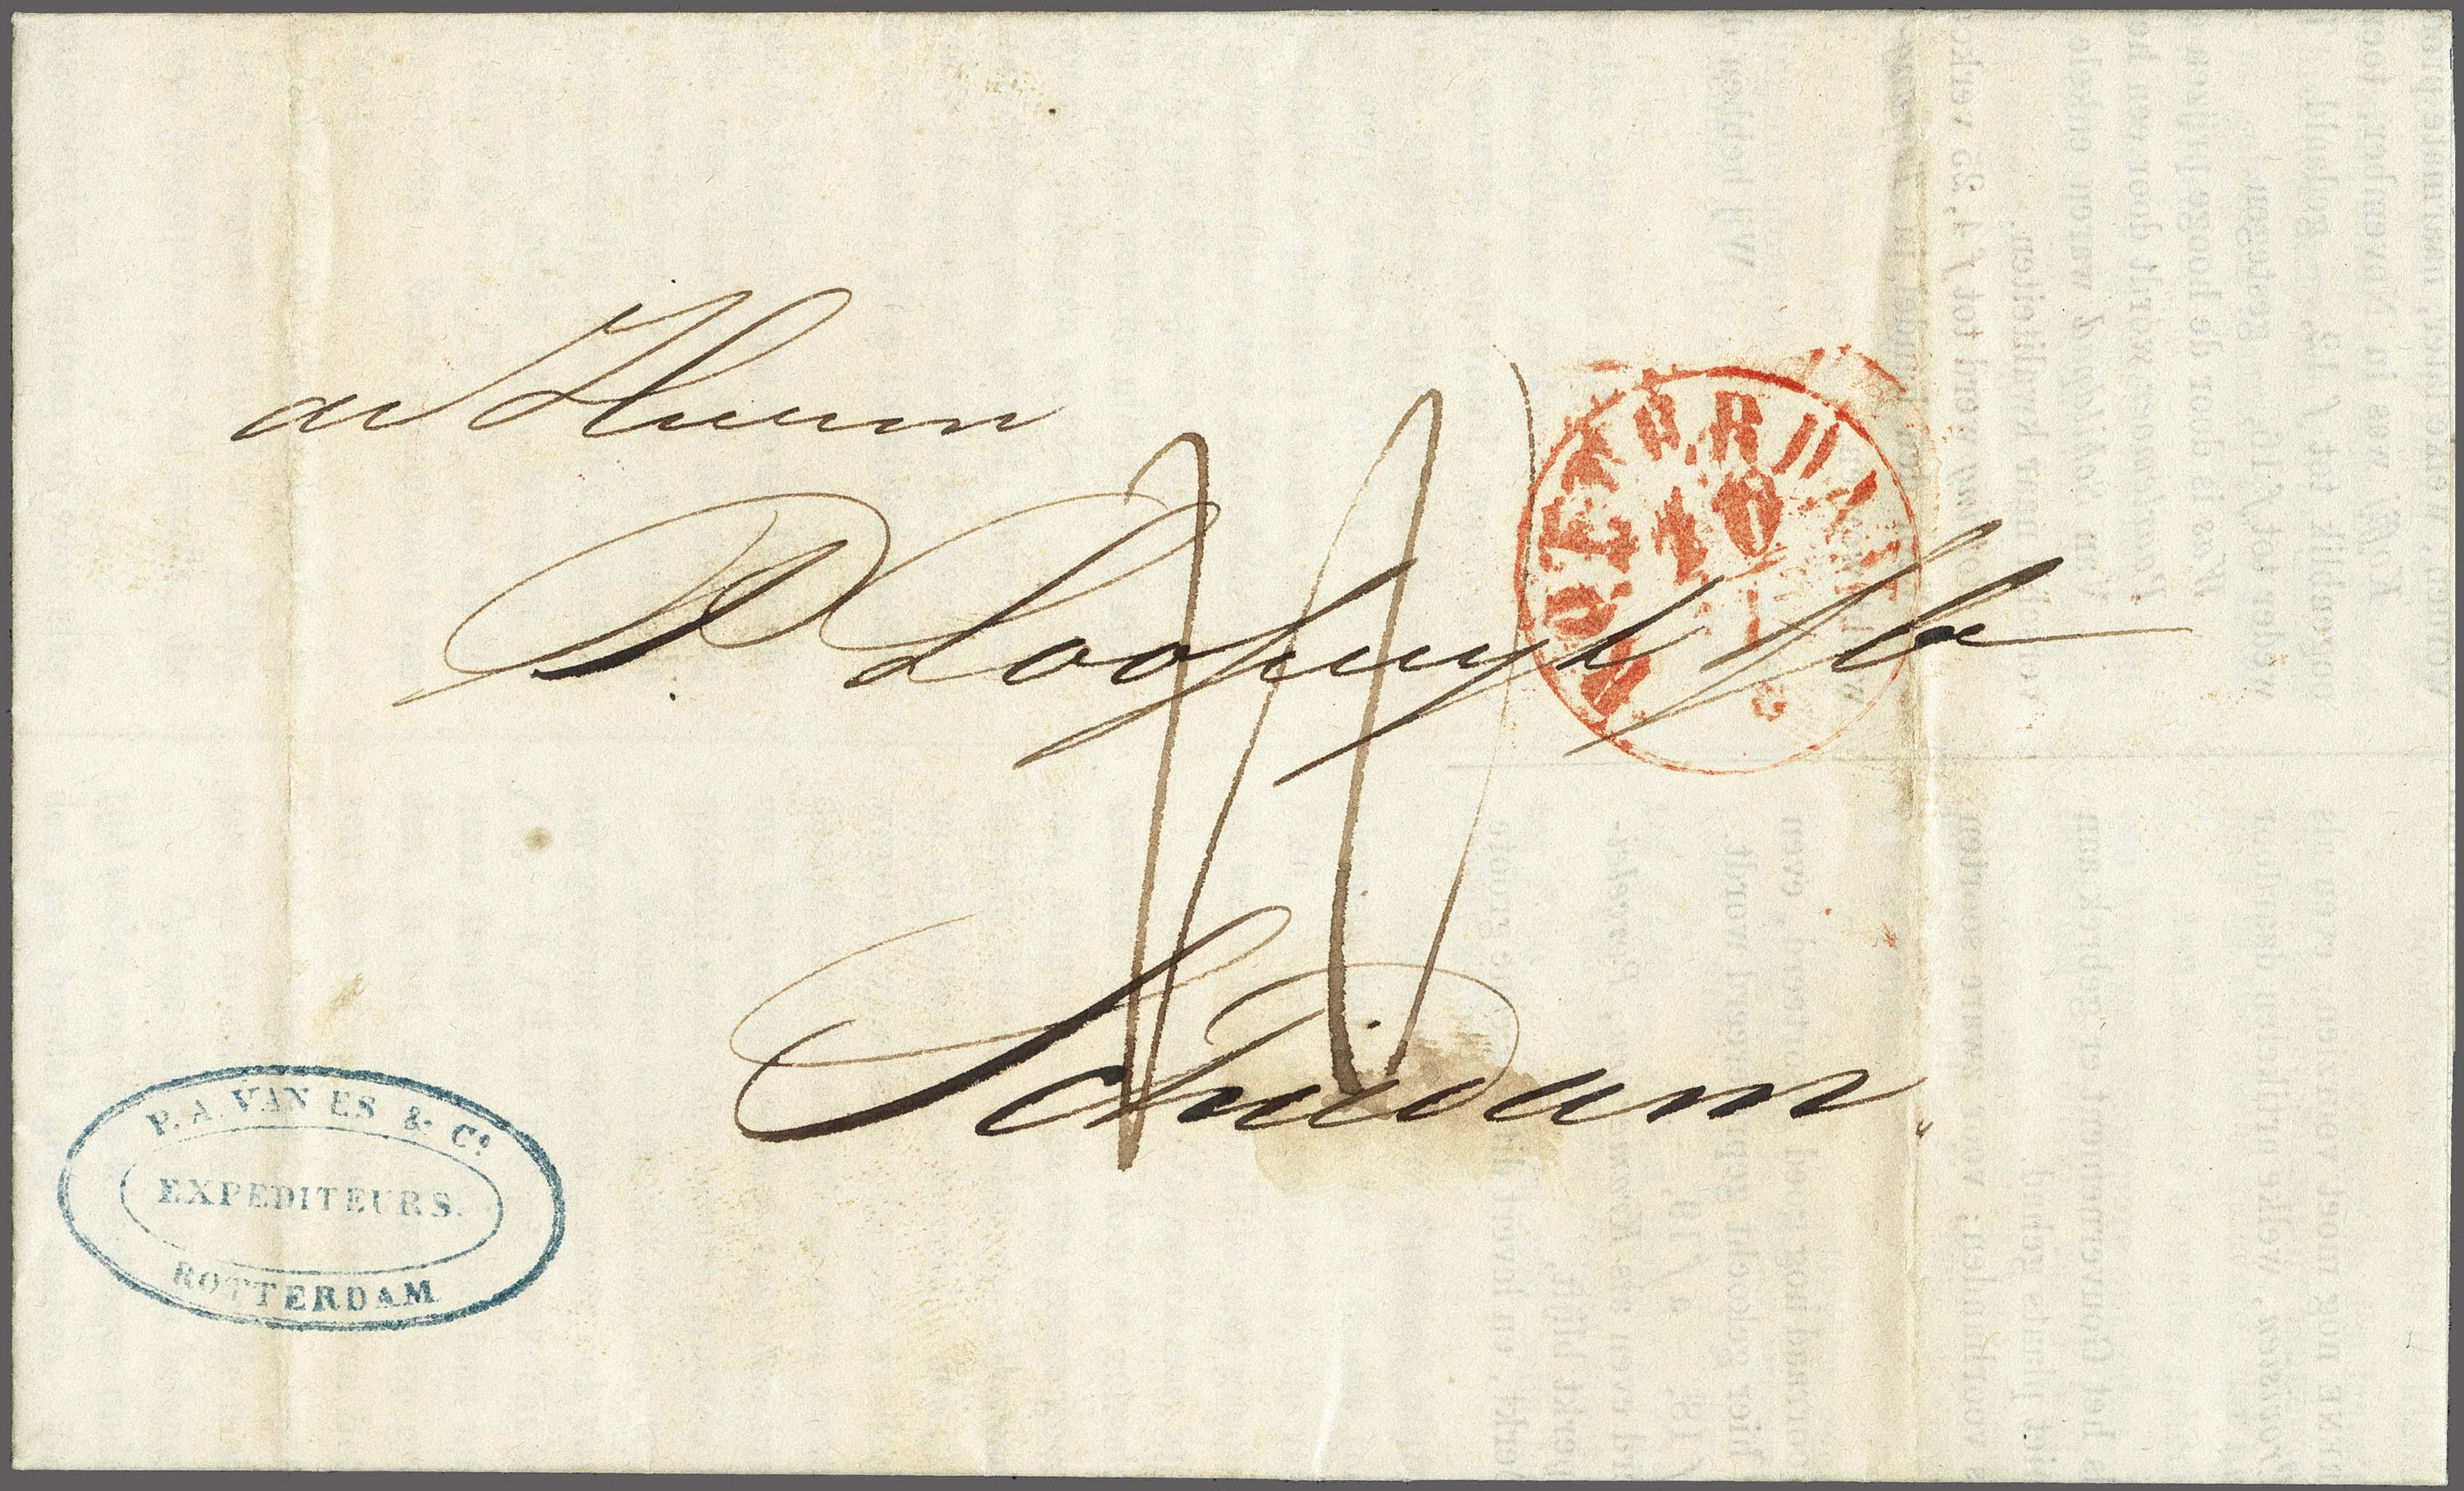 Lot 2442 - Netherlands and former colonies Netherlands -  Corinphila Veilingen Auction 250-253 - Day 3 - Netherlands and former colonies - Single lots & Picture postcards